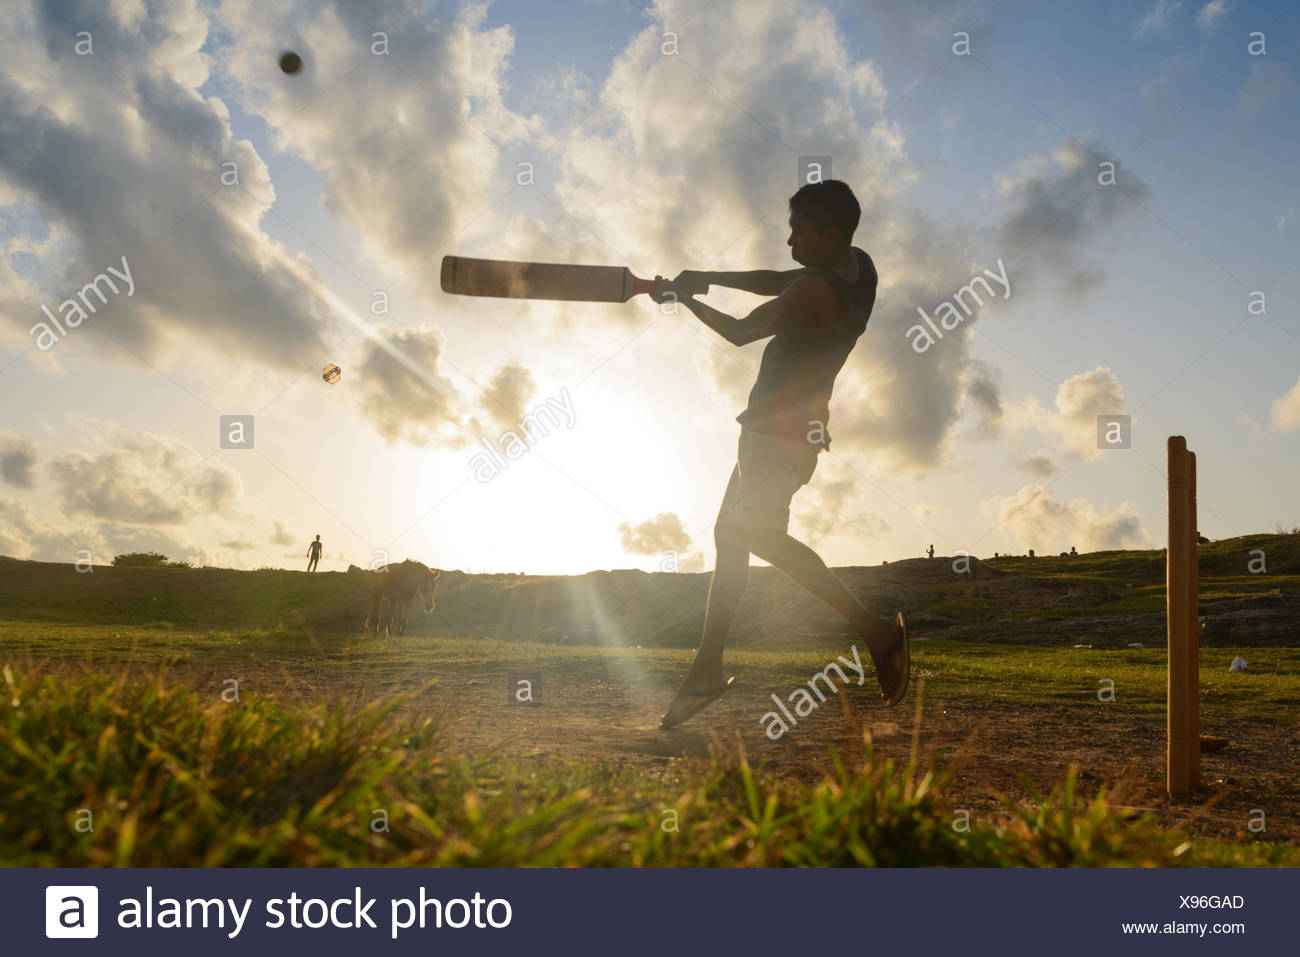 Silhouette of a man playing cricket, Galle, Sri Lanka - Stock Image